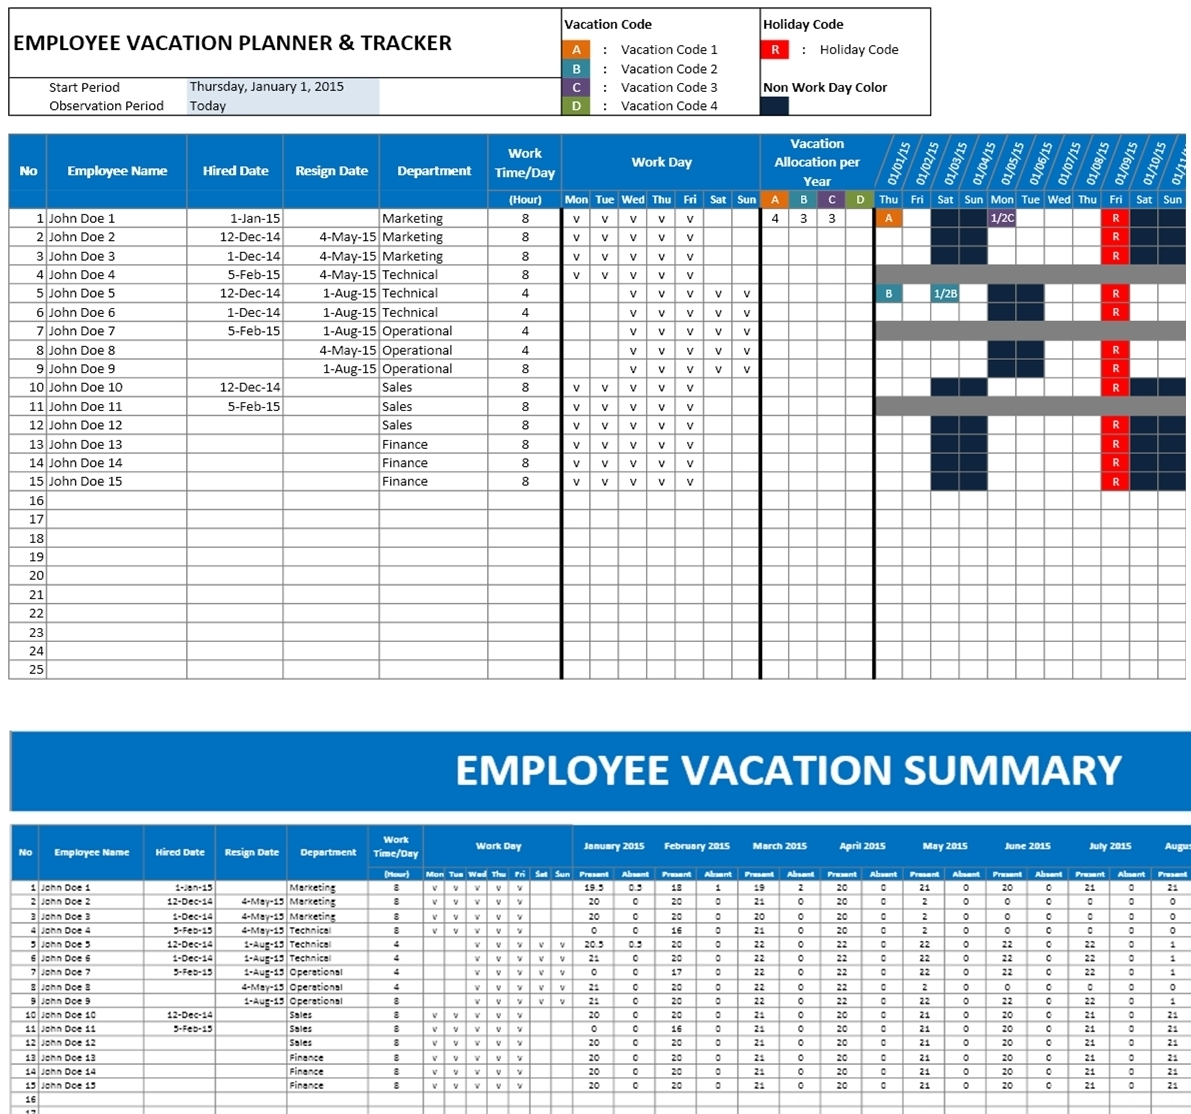 Employee Vacation Tracker & Dashboard using MS Excel